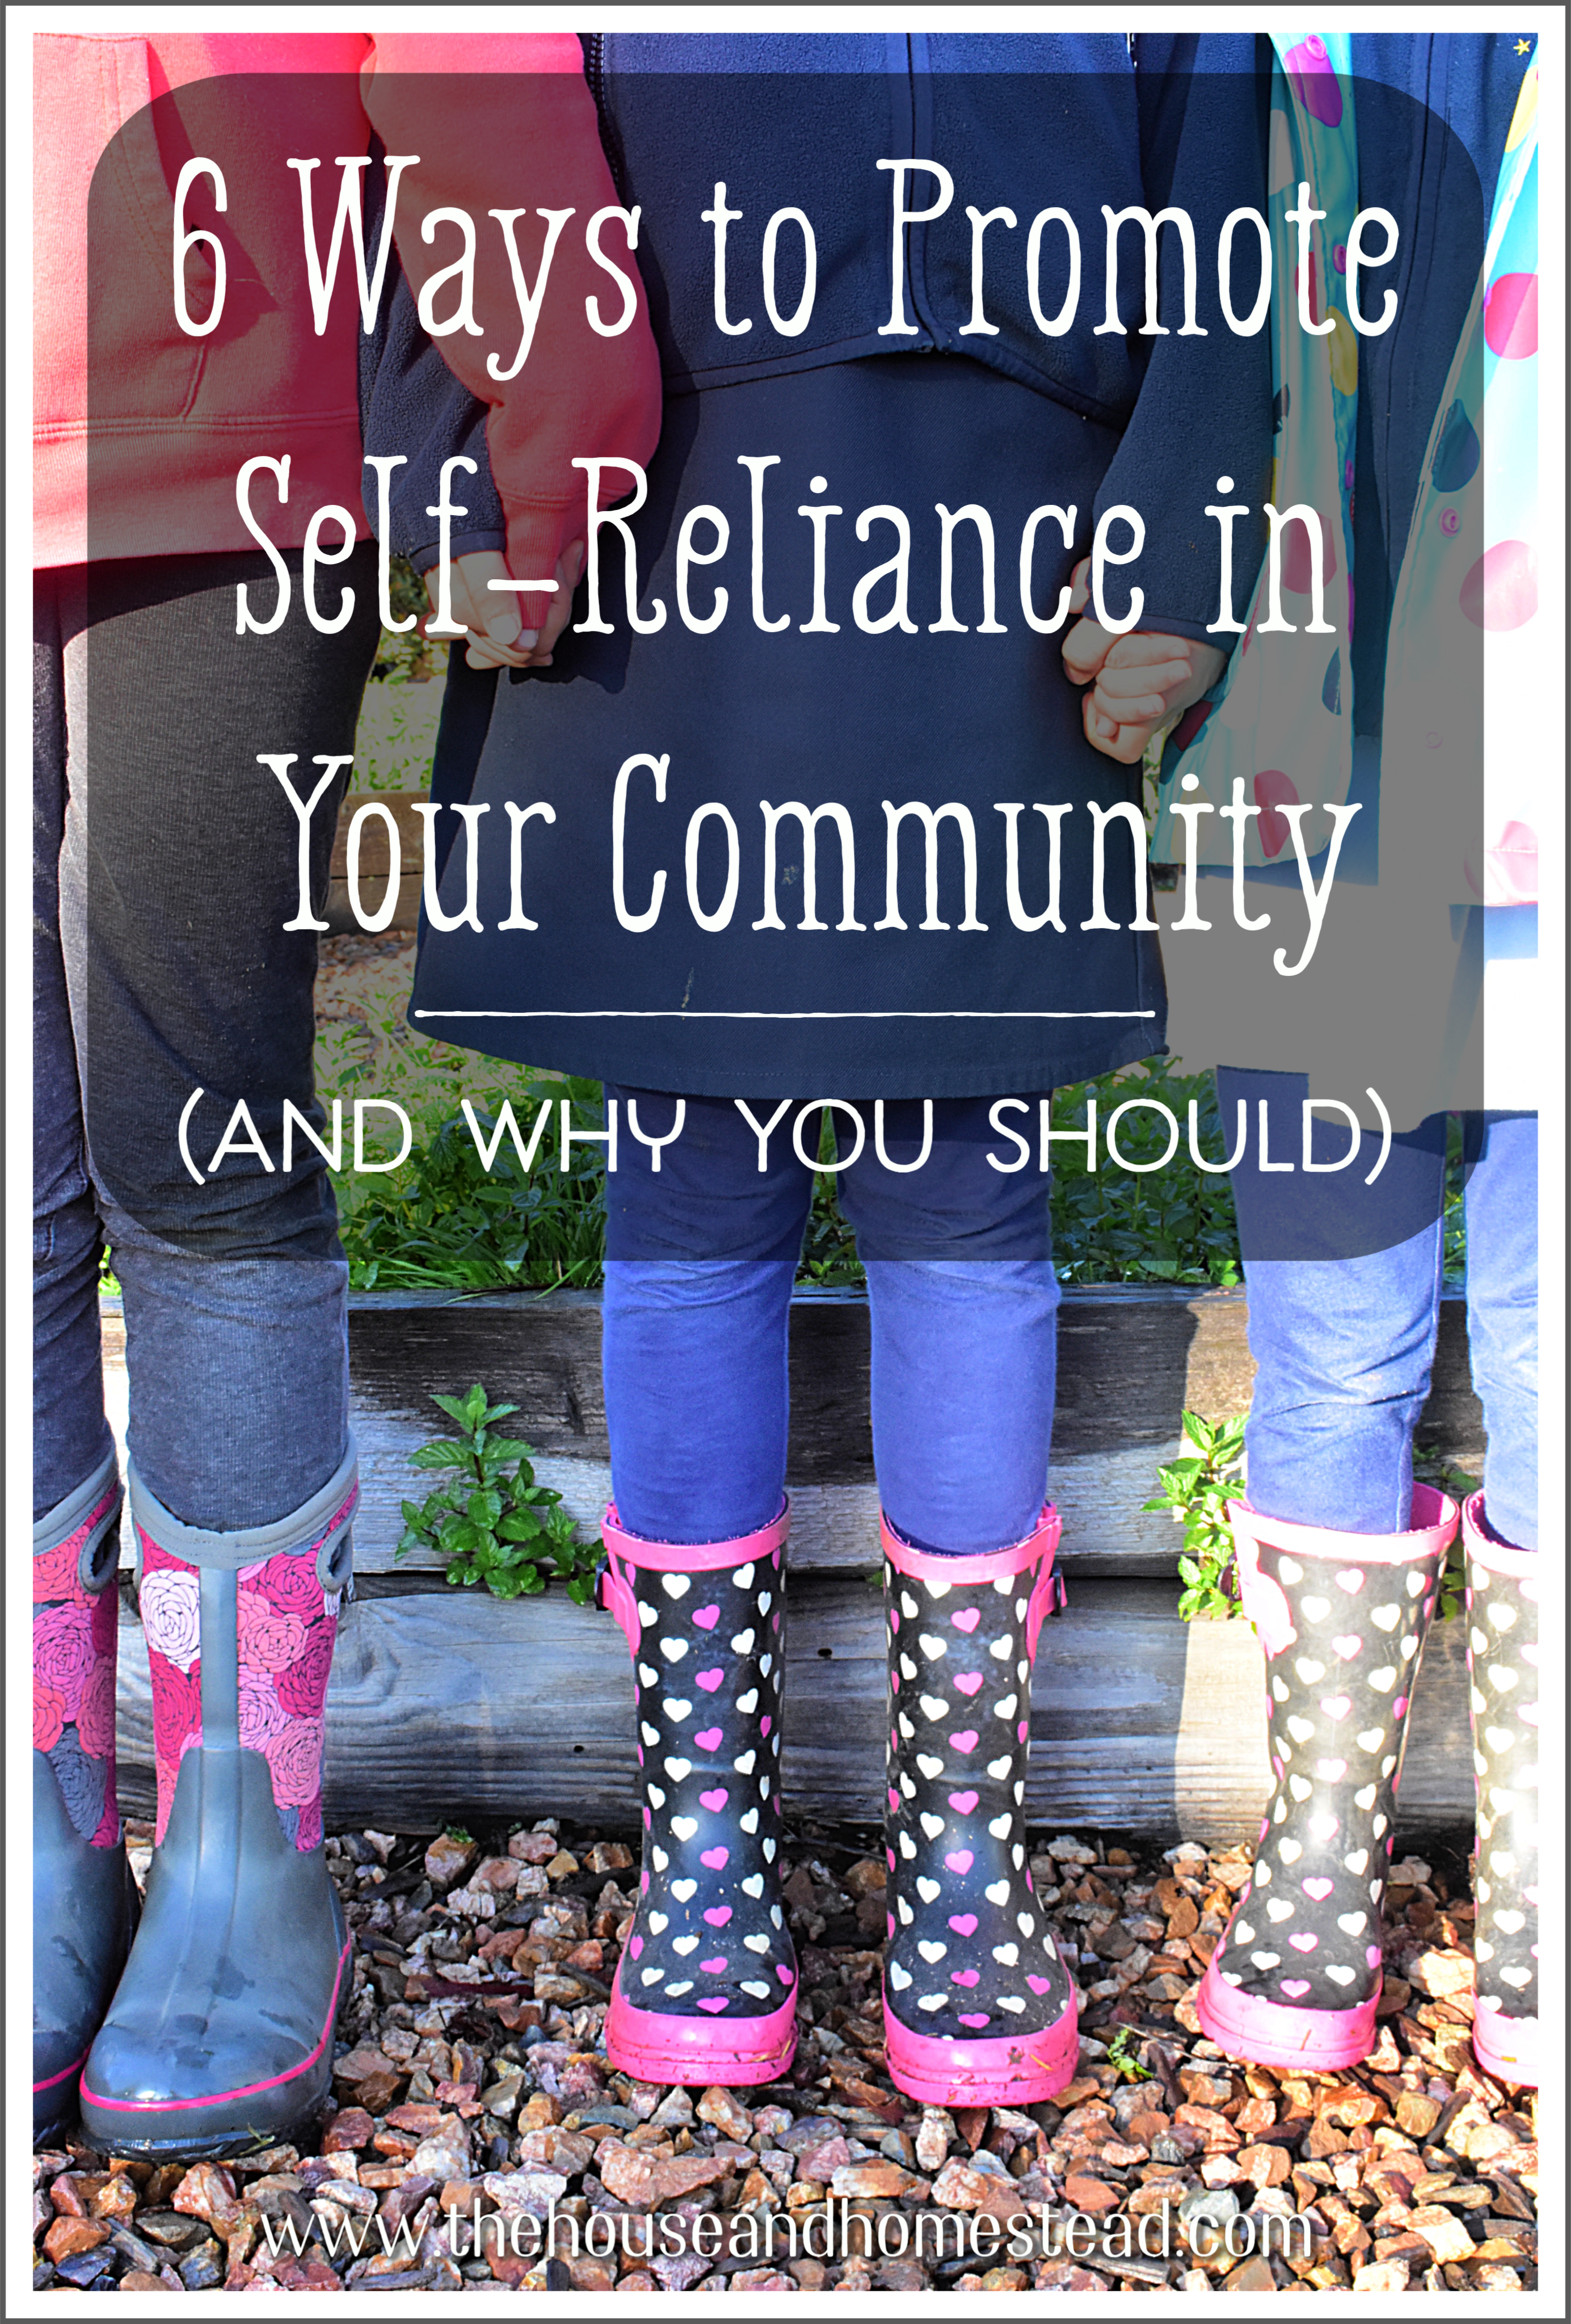 Self-reliance isn't just about being able to provide for yourself with your own two hands. Your own self-reliance is intrinsically tied to the larger world around you. Learn how to promote self-reliance in your community and, in turn, support your own security and self-sufficiency. #selfreliance #supportyourcommunity #foodsecurity #selfsufficiency